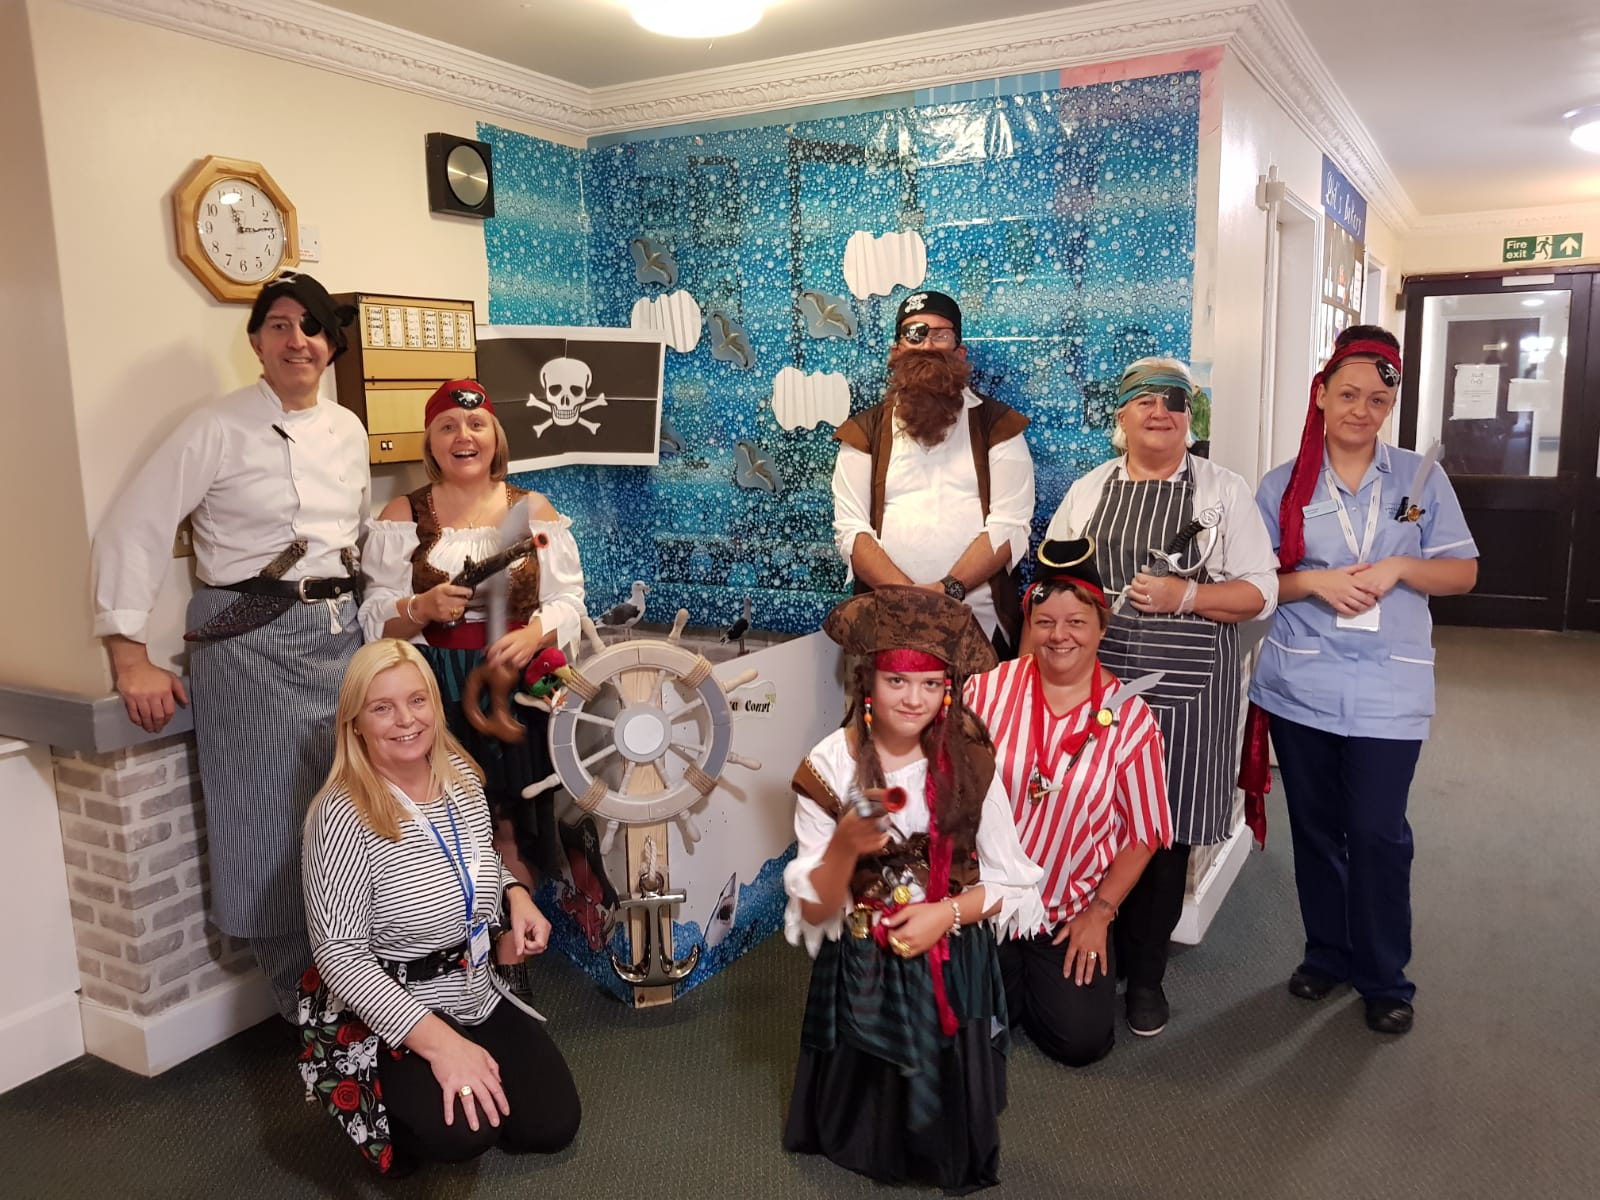 Pirate Party 2018: Key Healthcare is dedicated to caring for elderly residents in safe. We have multiple dementia care homes including our care home middlesbrough, our care home St. Helen and care home saltburn. We excel in monitoring and improving care levels.